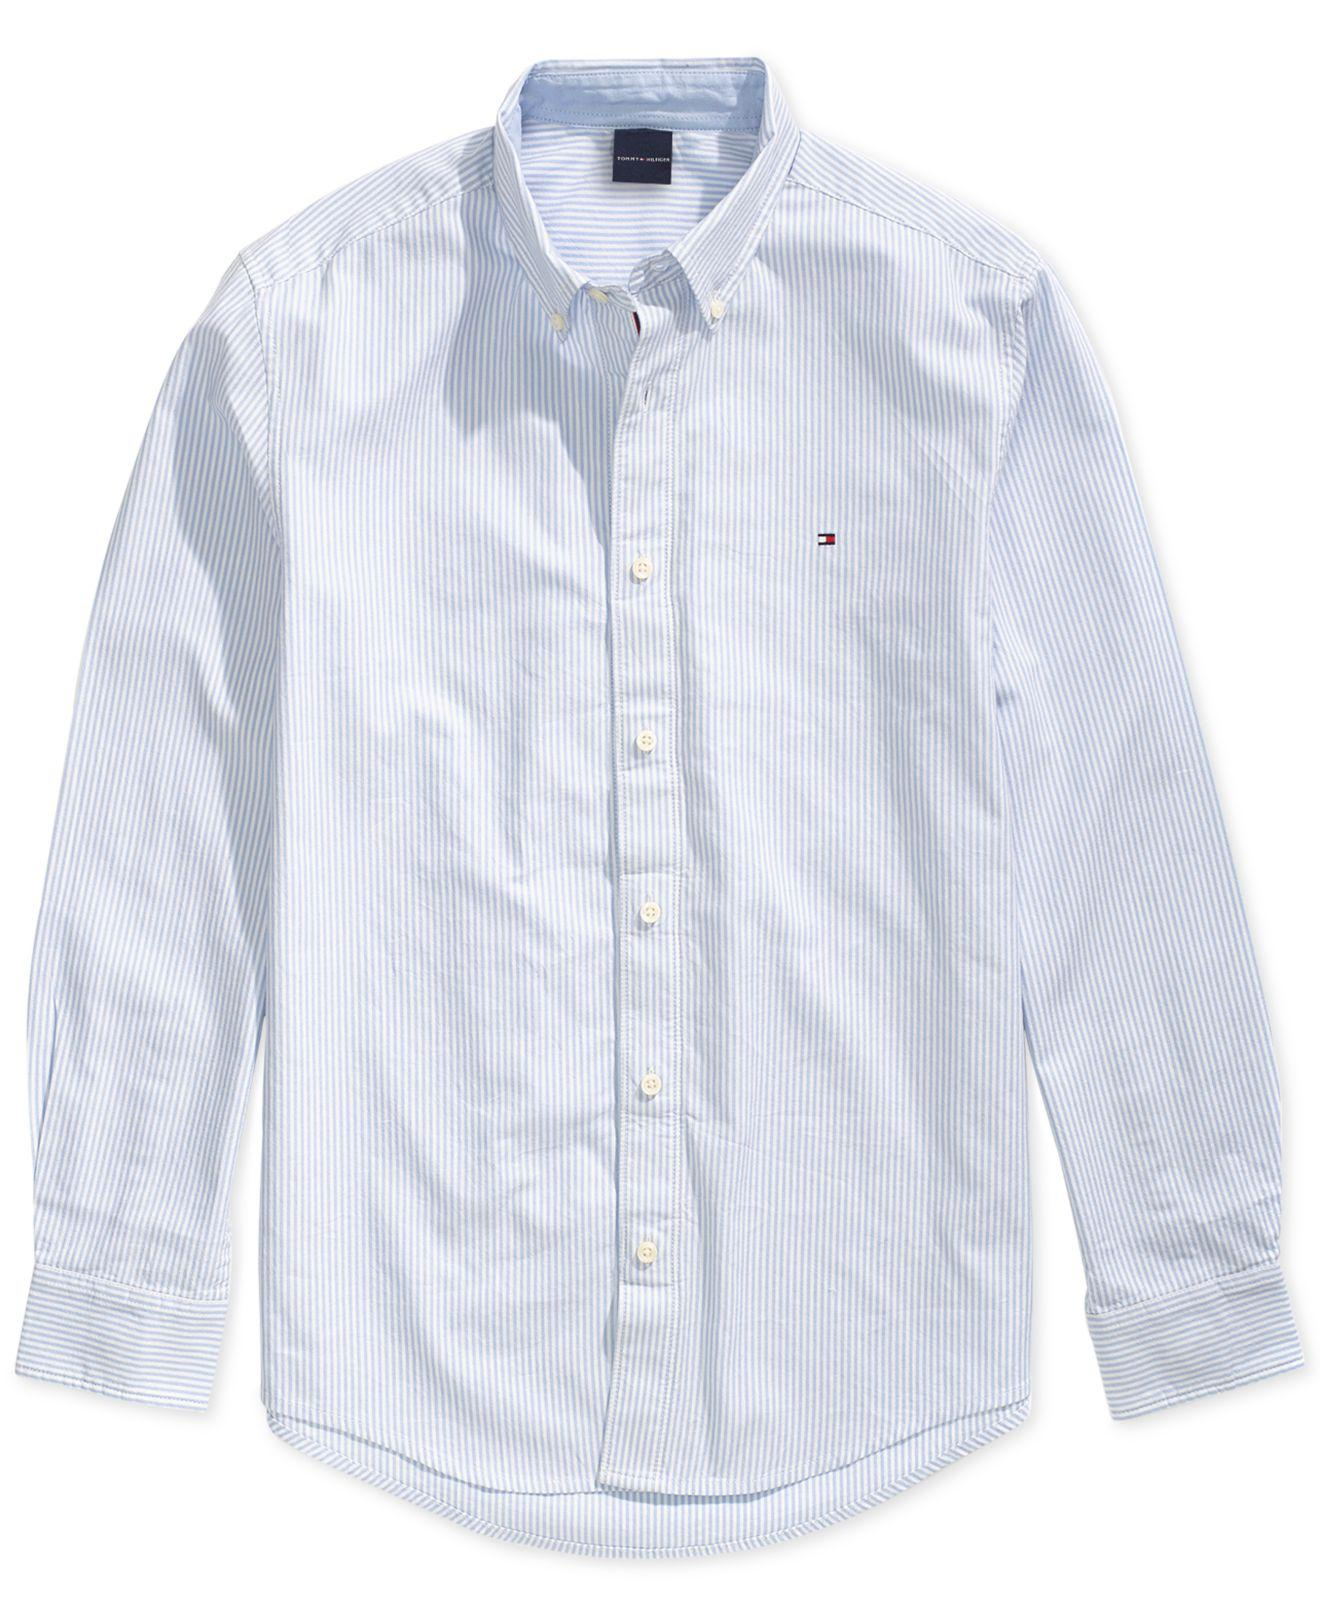 000c59a0227 Lyst - Tommy Hilfiger City Stripe Oxford Shirt With Magnetic Buttons ...